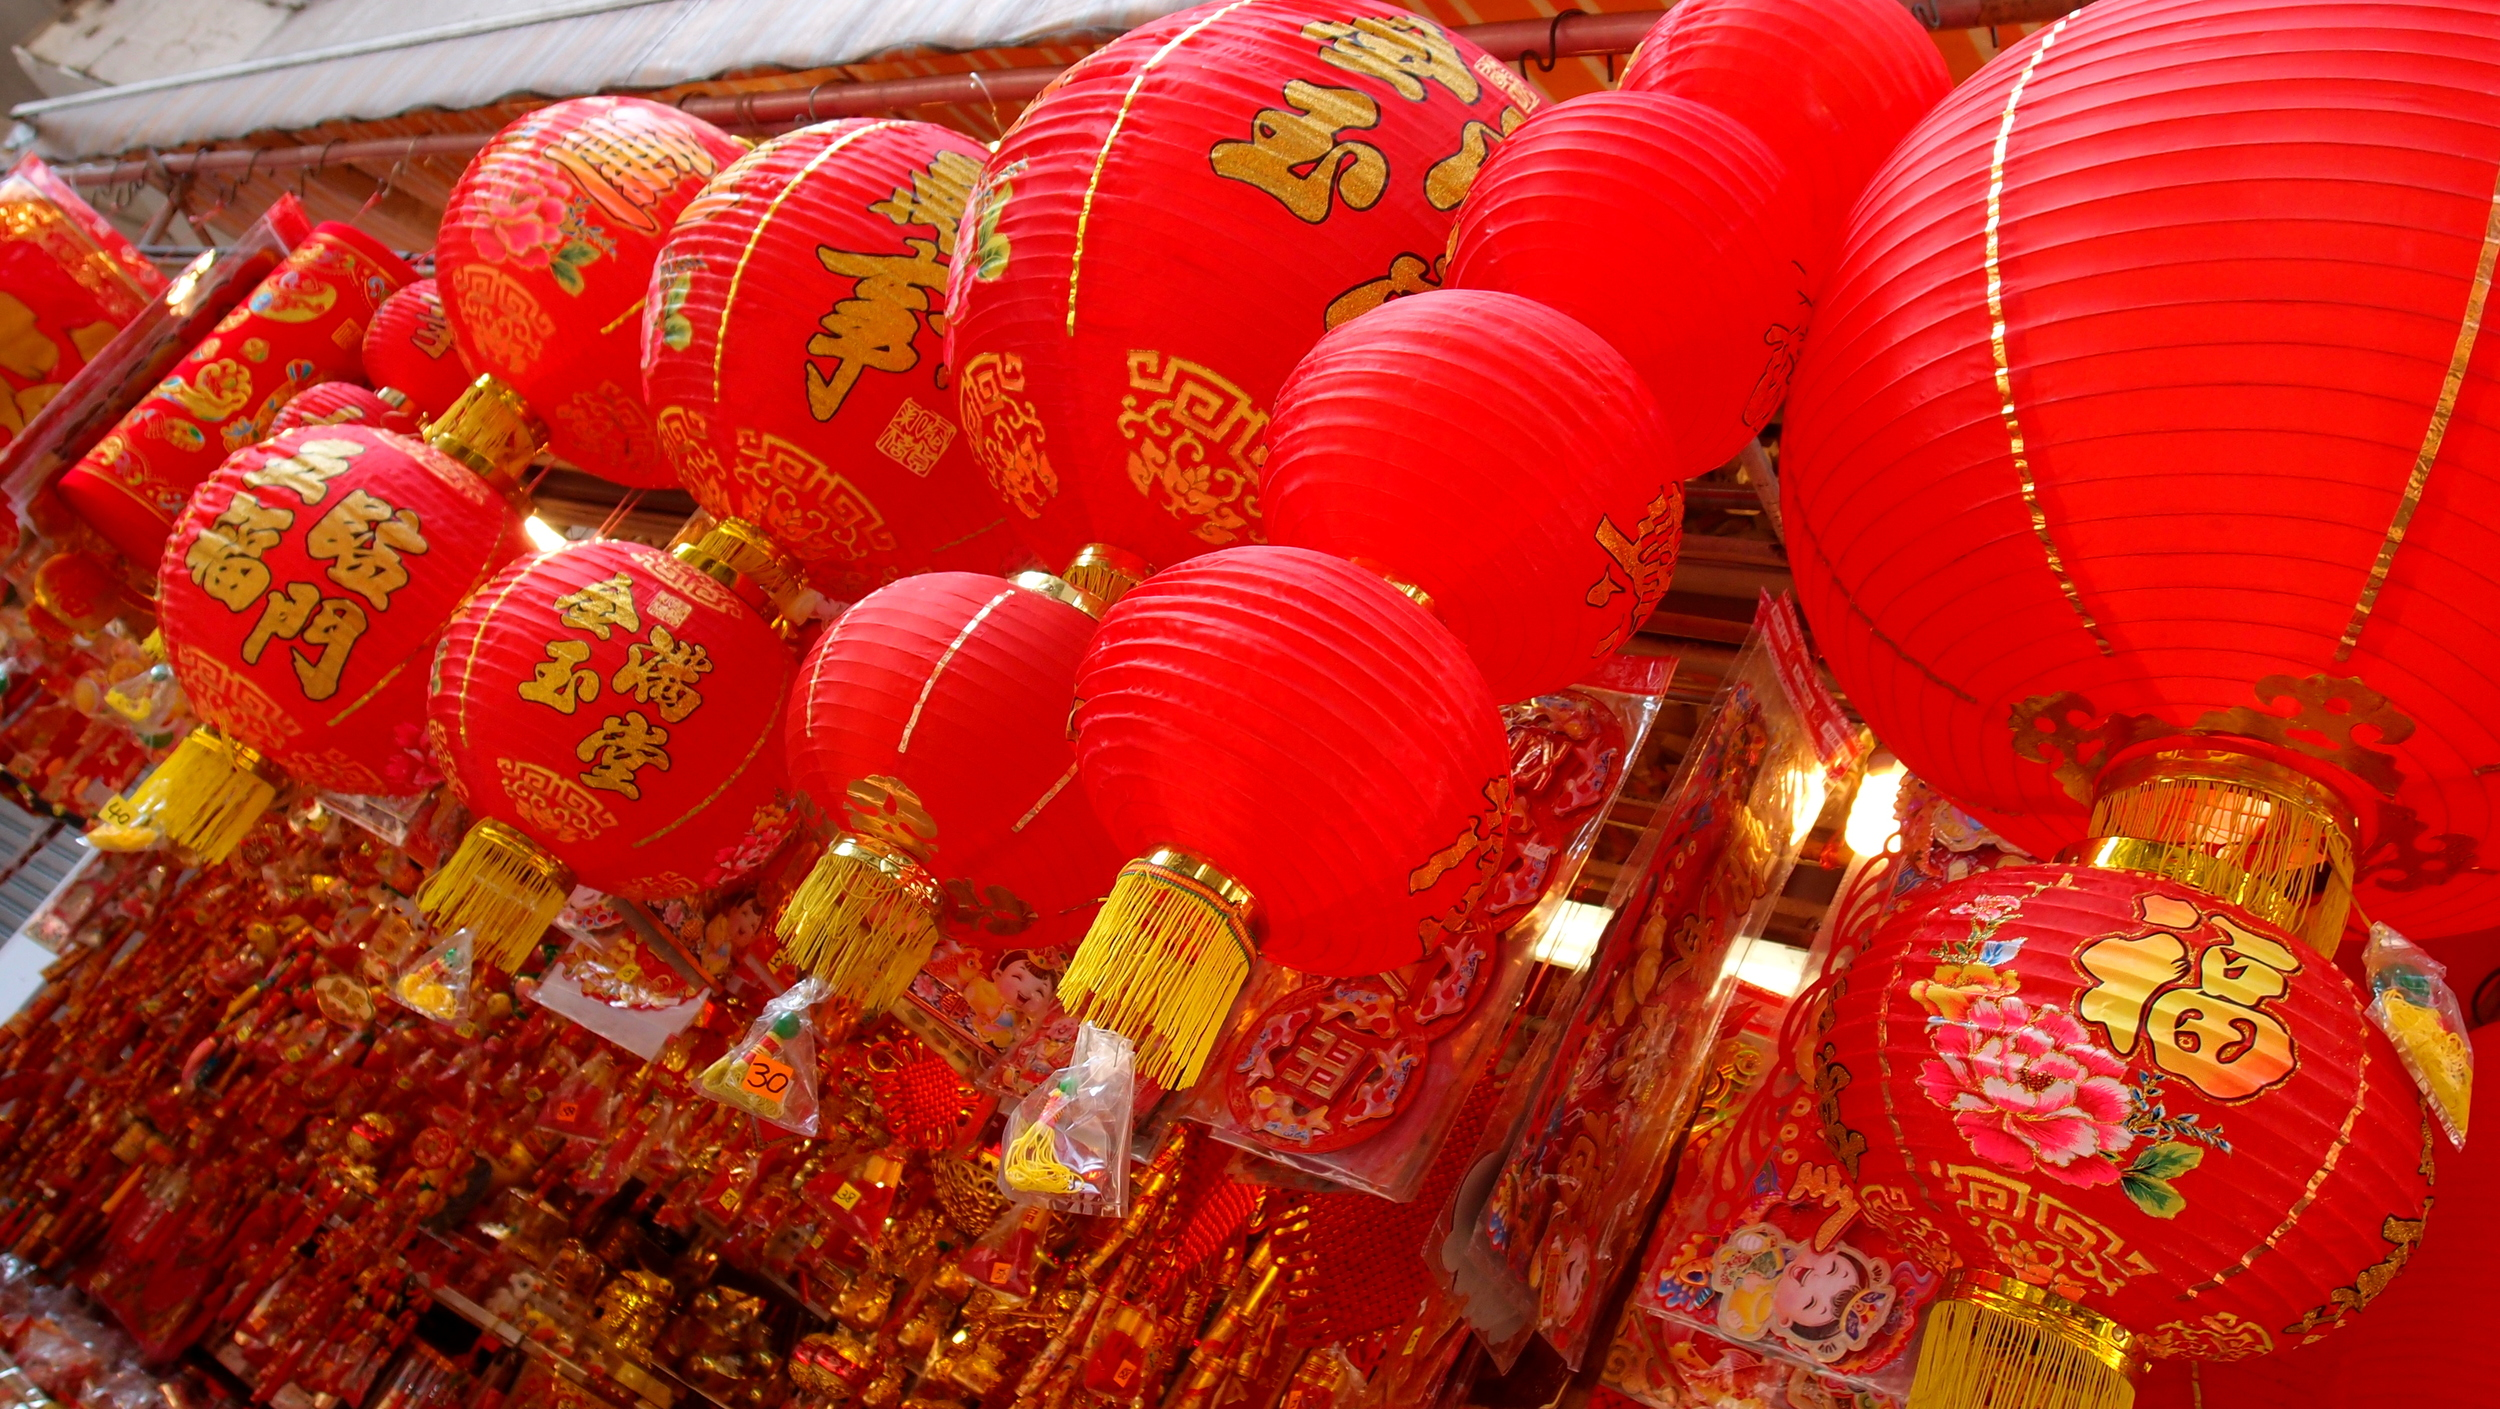 Our streets are bathed in red and gold at the moment in anticipation of Chinese New Year, the decorations can be a bit overwhelming!